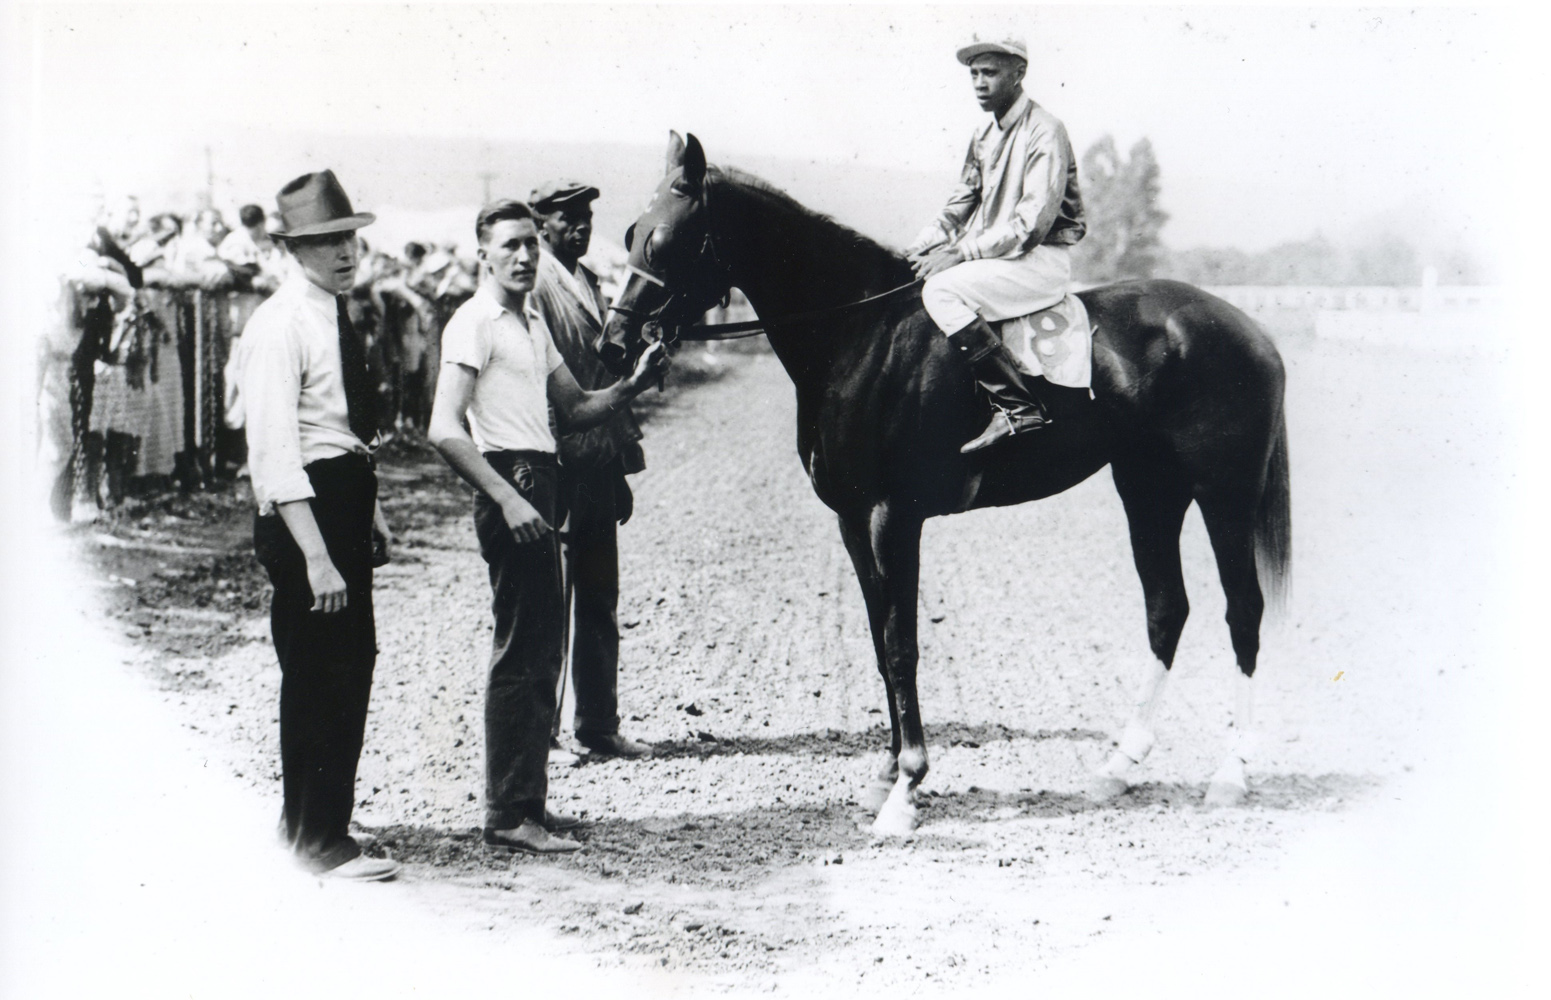 Henry Clark in the winner's circle with Opposition (R. Booker up) at Cumberland Race Track in Maryland, August 1935 (Joe Fleisher/Museum Collection)